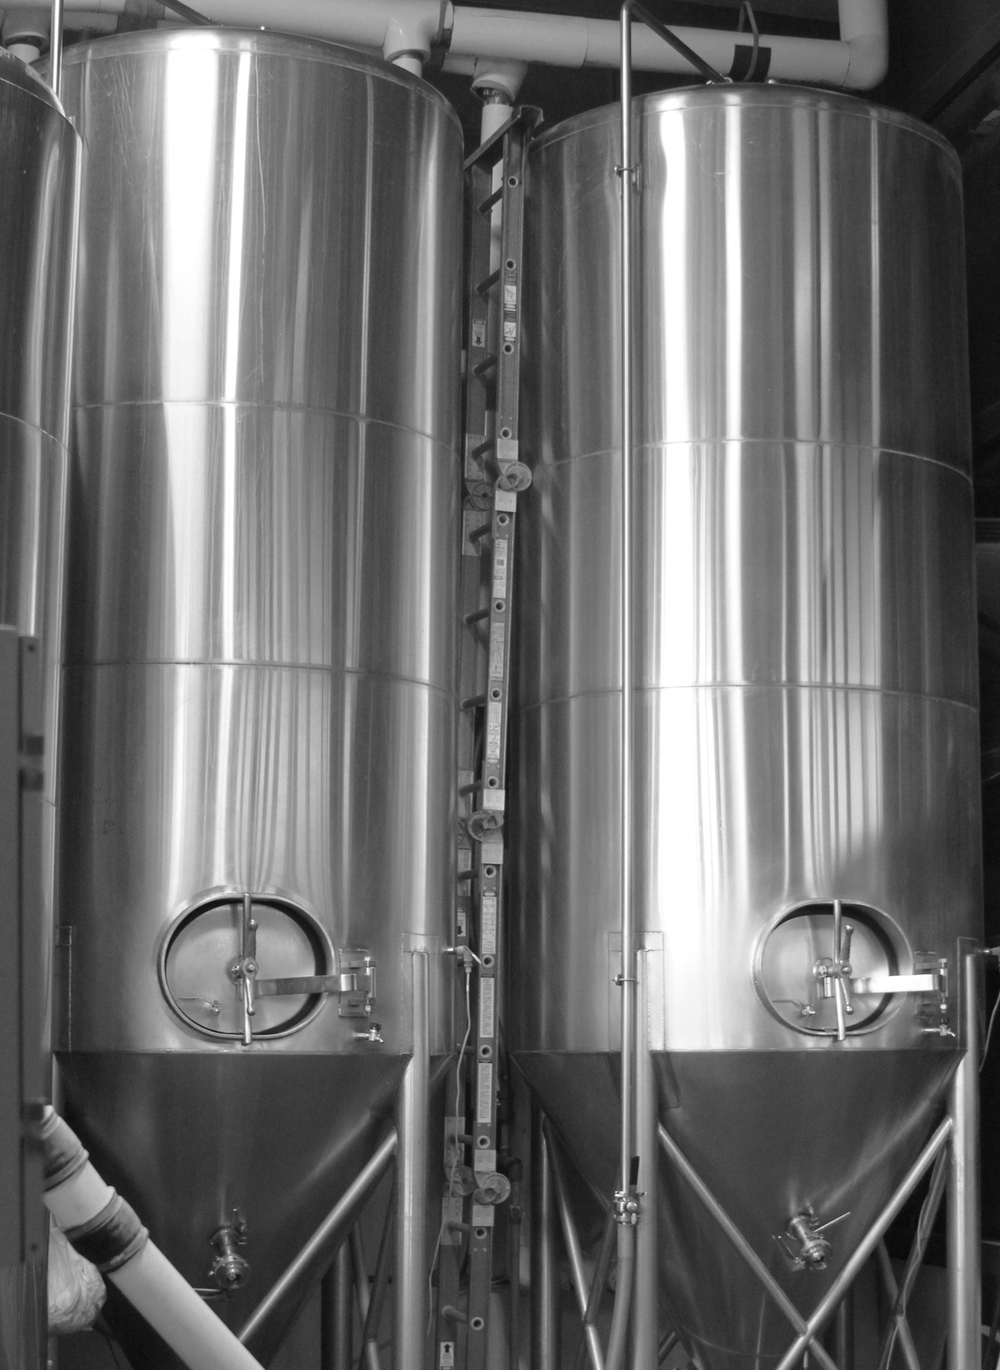 50bbl Fermenters #7 and #8